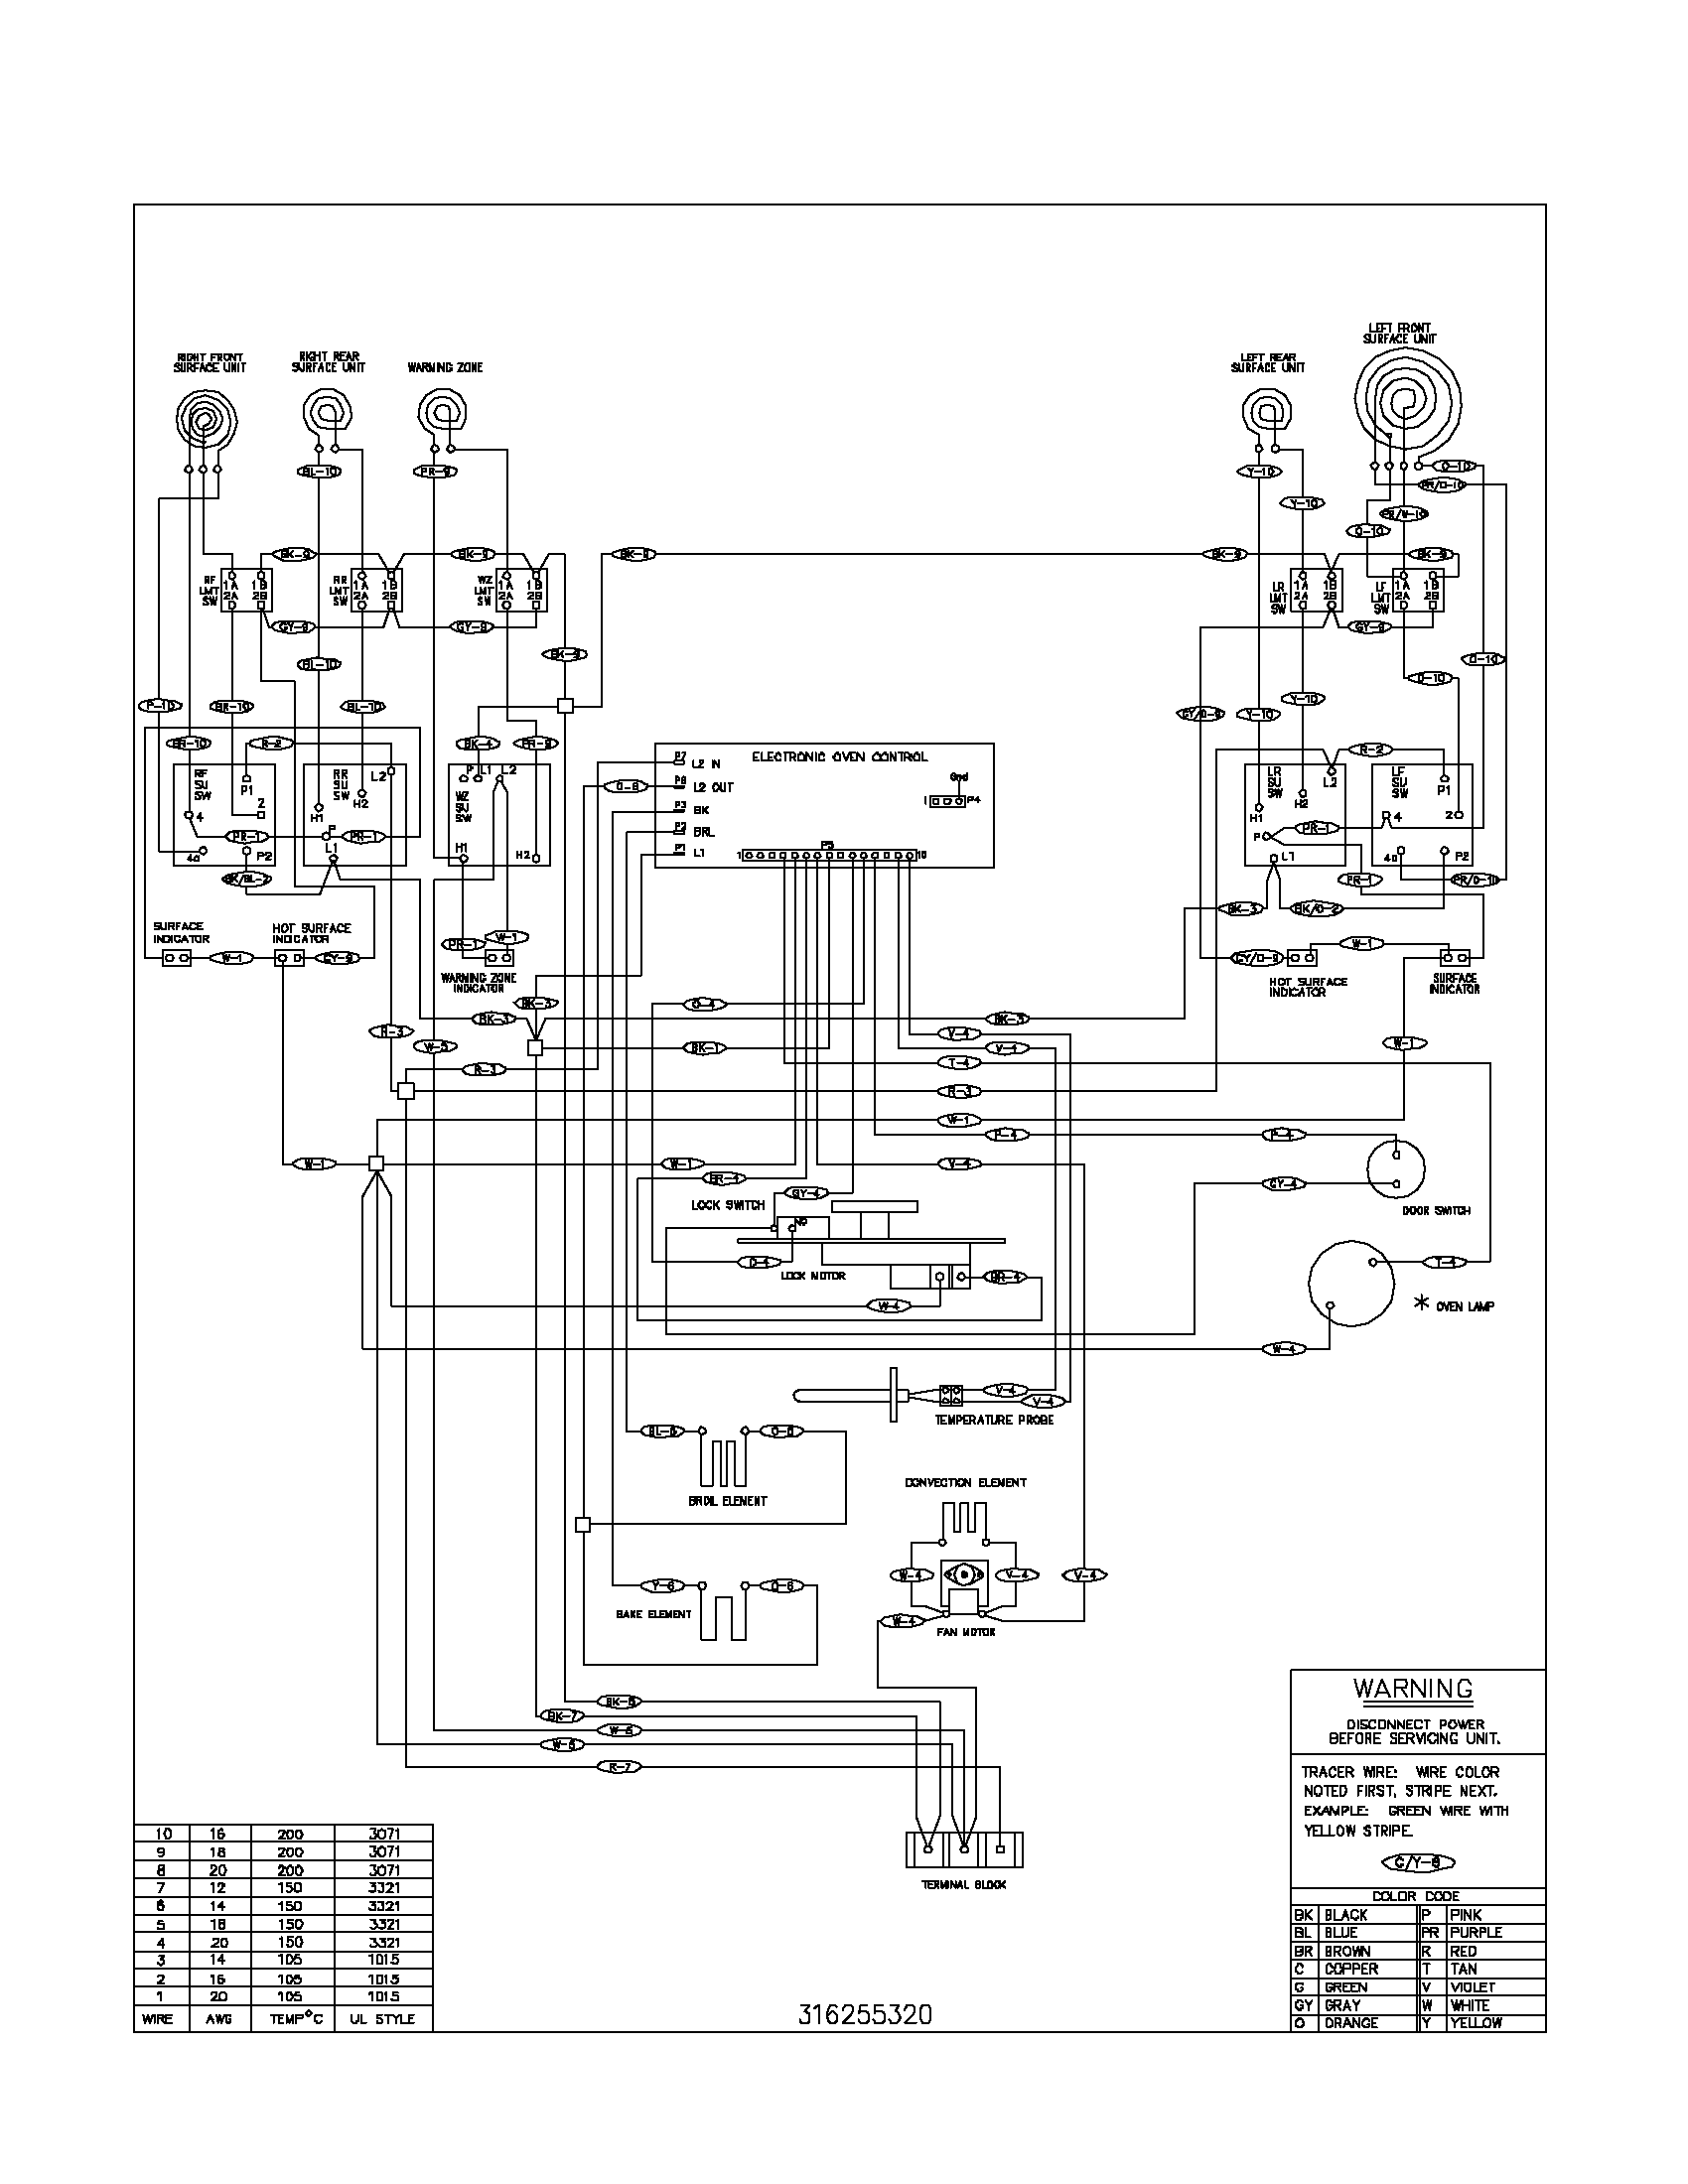 wiring diagram parts whirlpool oven wiring diagram whirlpool refrigerator diagram whirlpool refrigerator wiring schematic at n-0.co